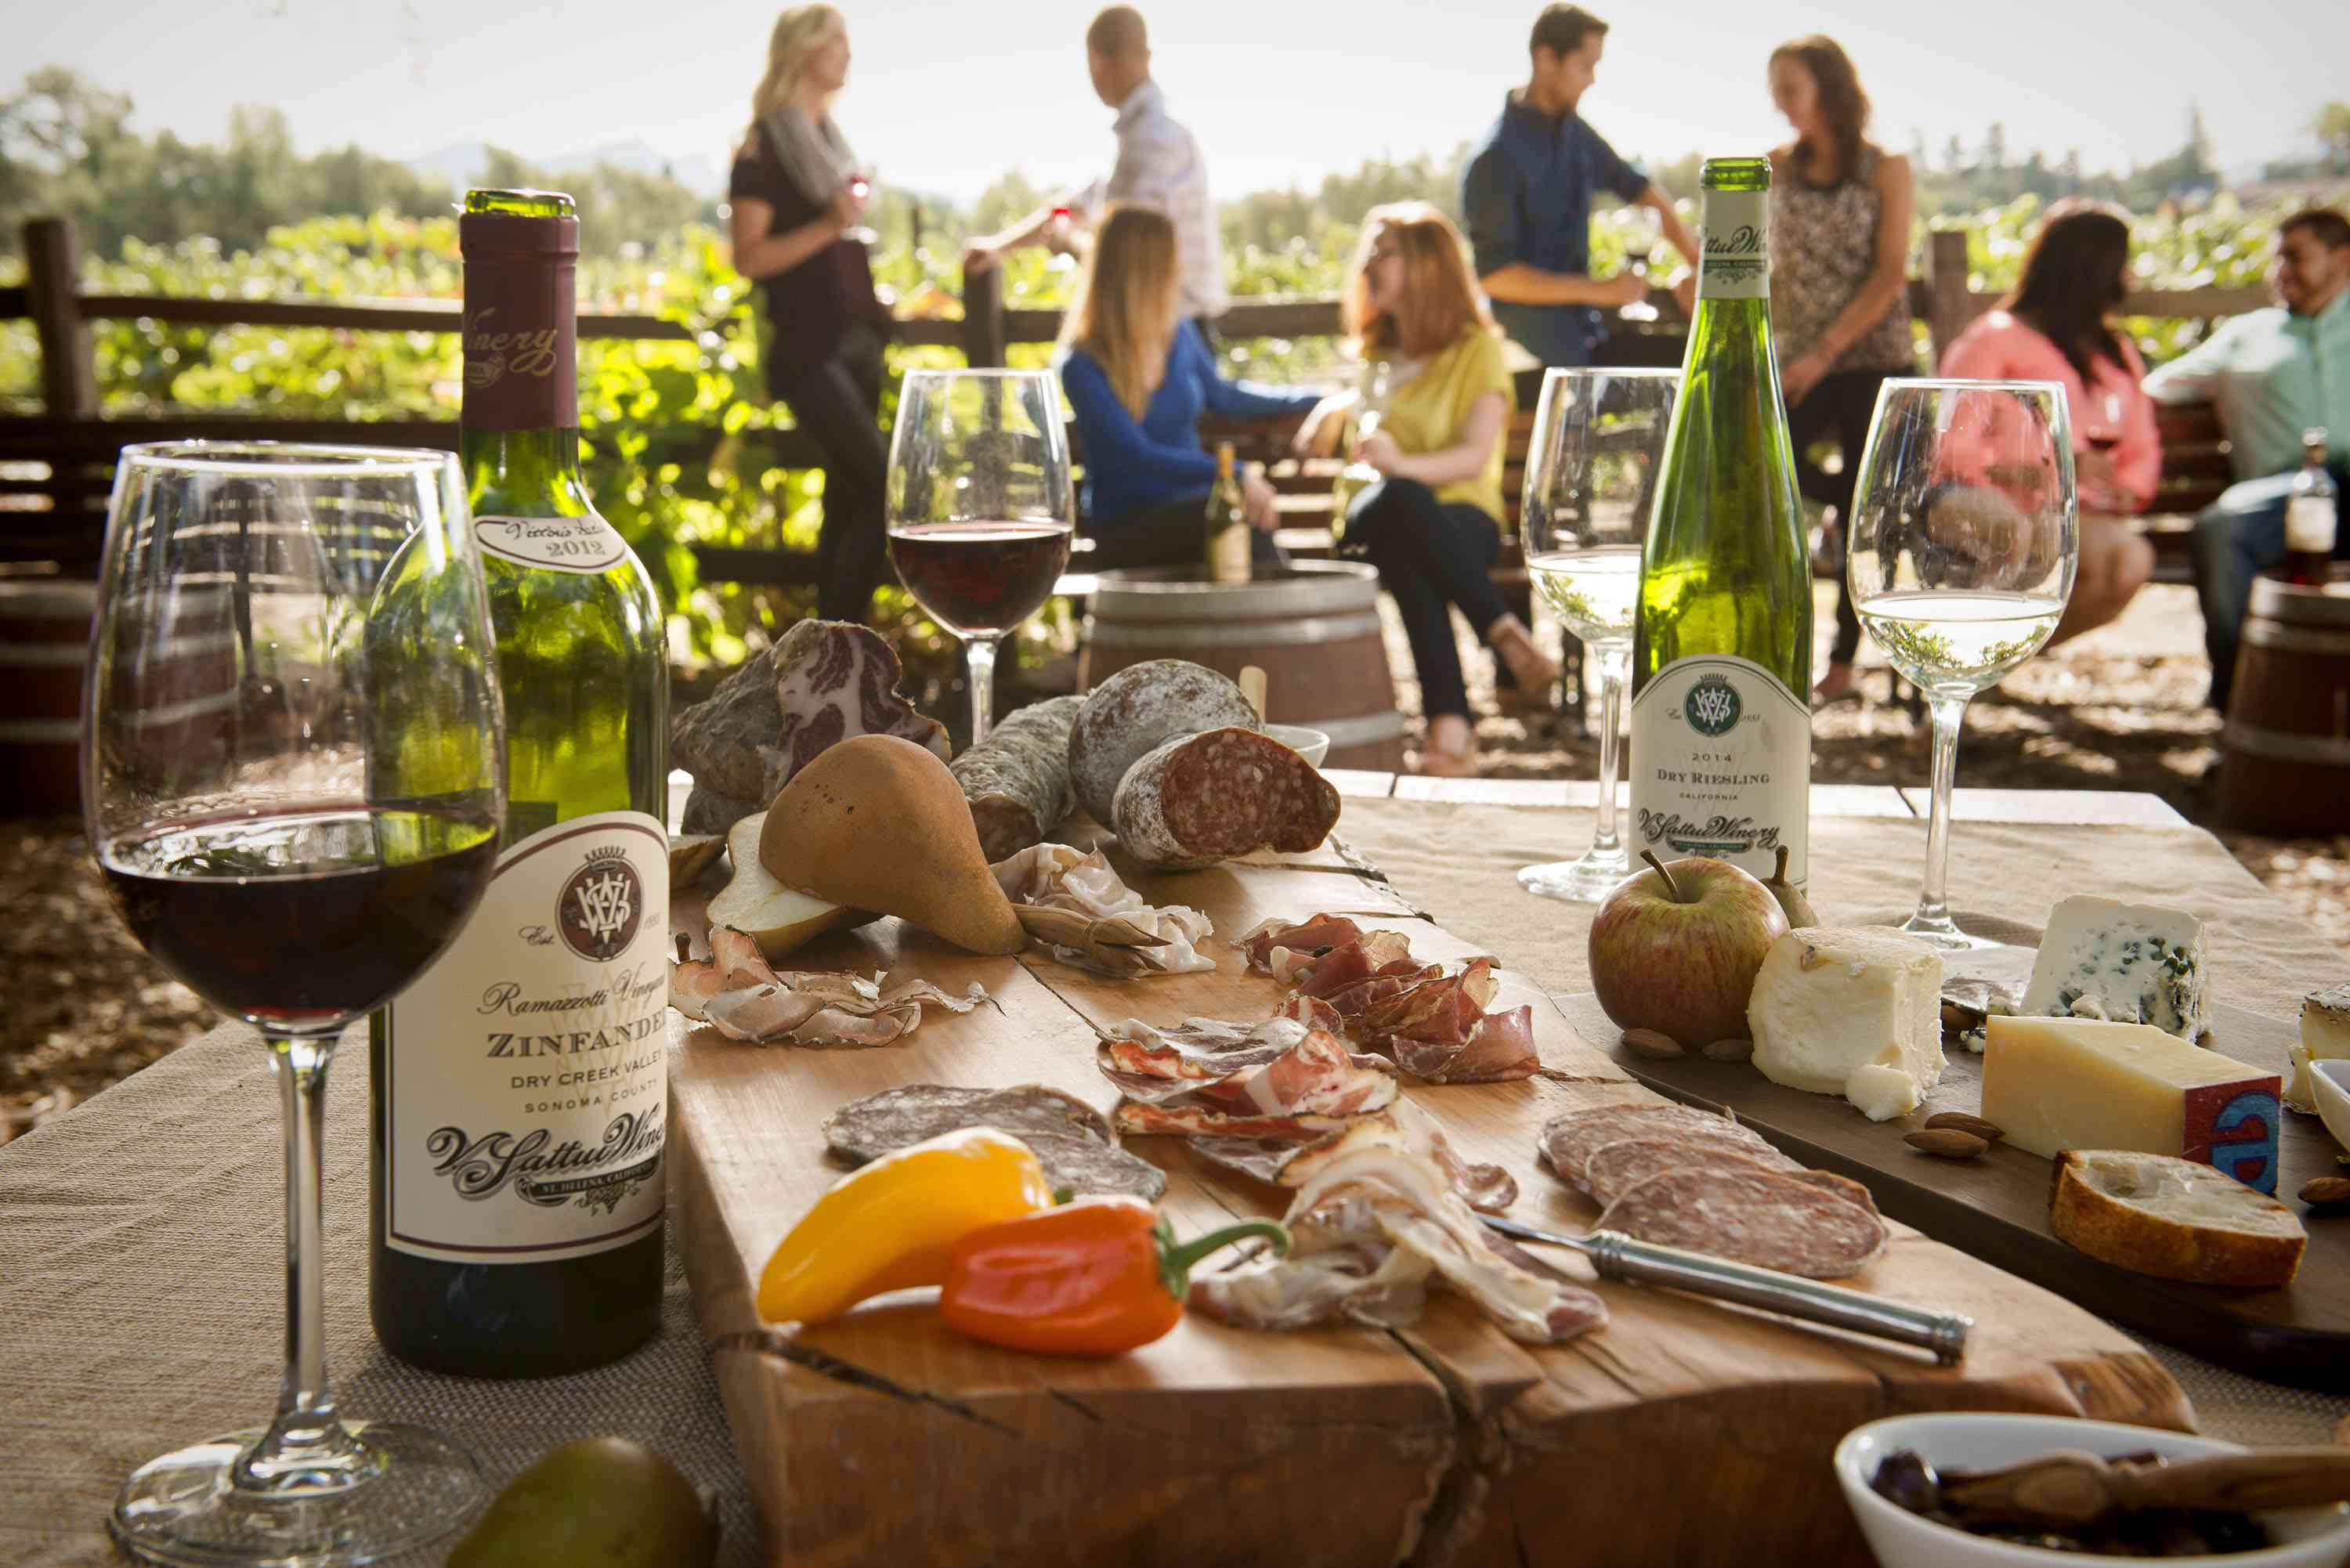 A table with wine and charcuterie with a group of people in the background